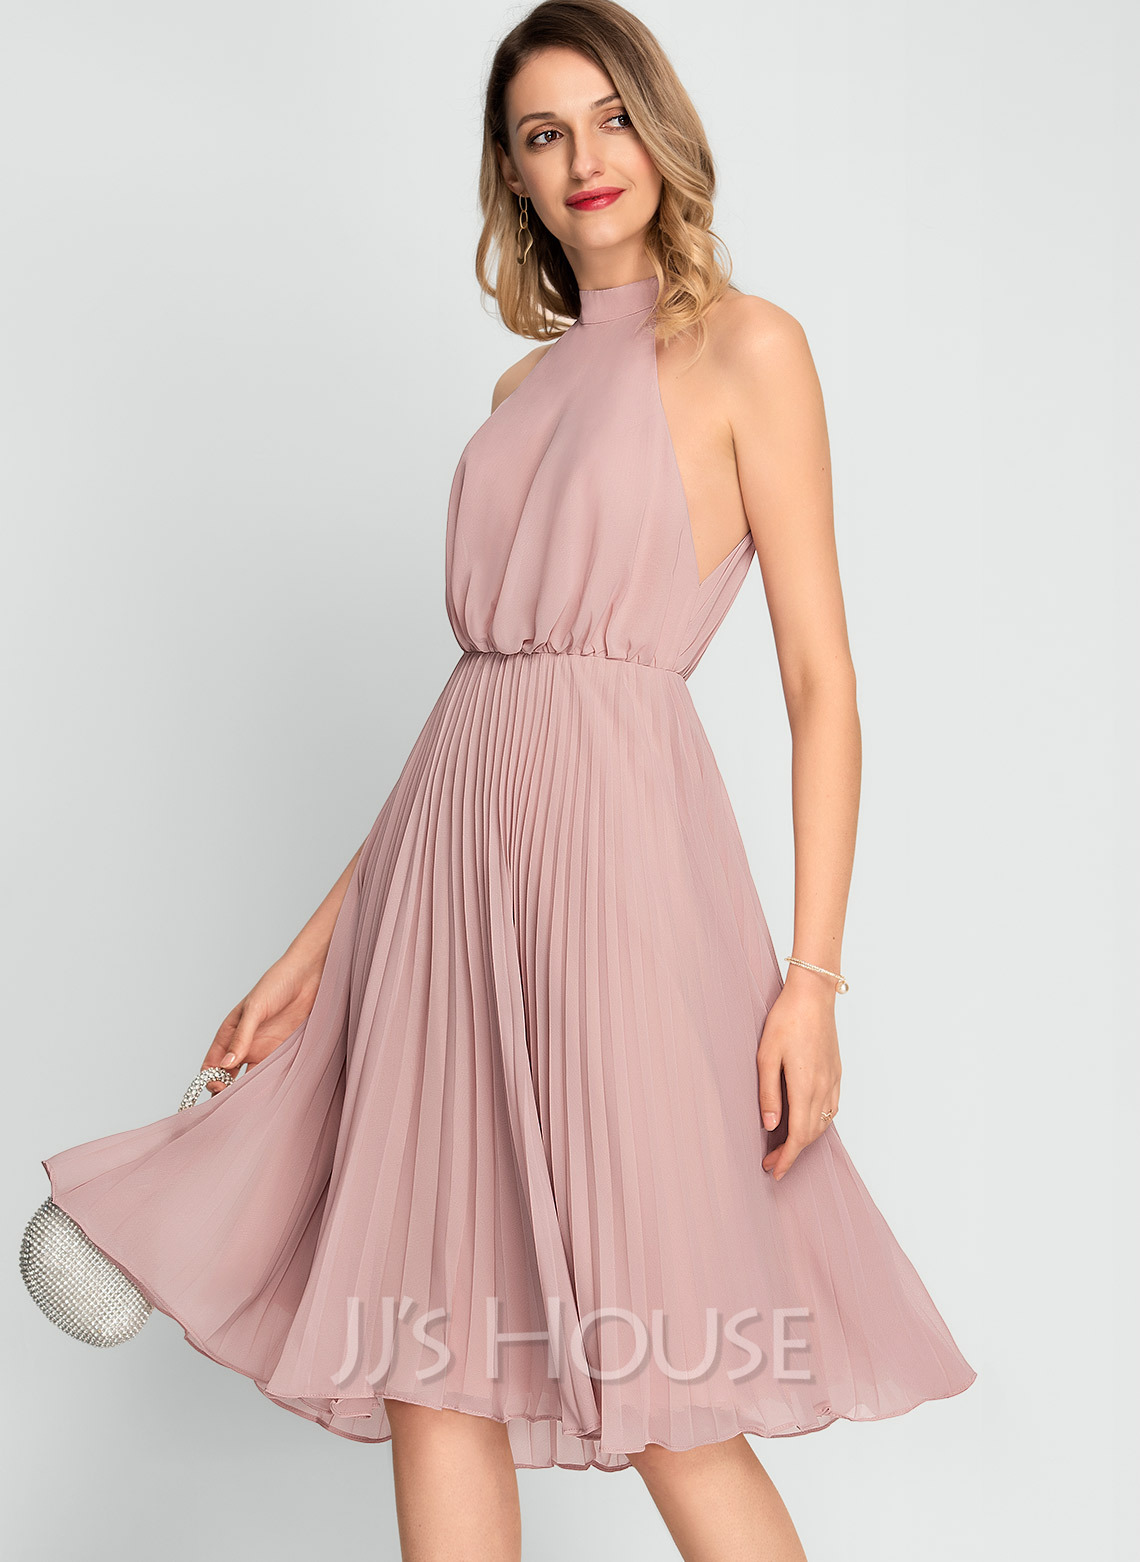 High Neck Sleeveless Midi Dresses